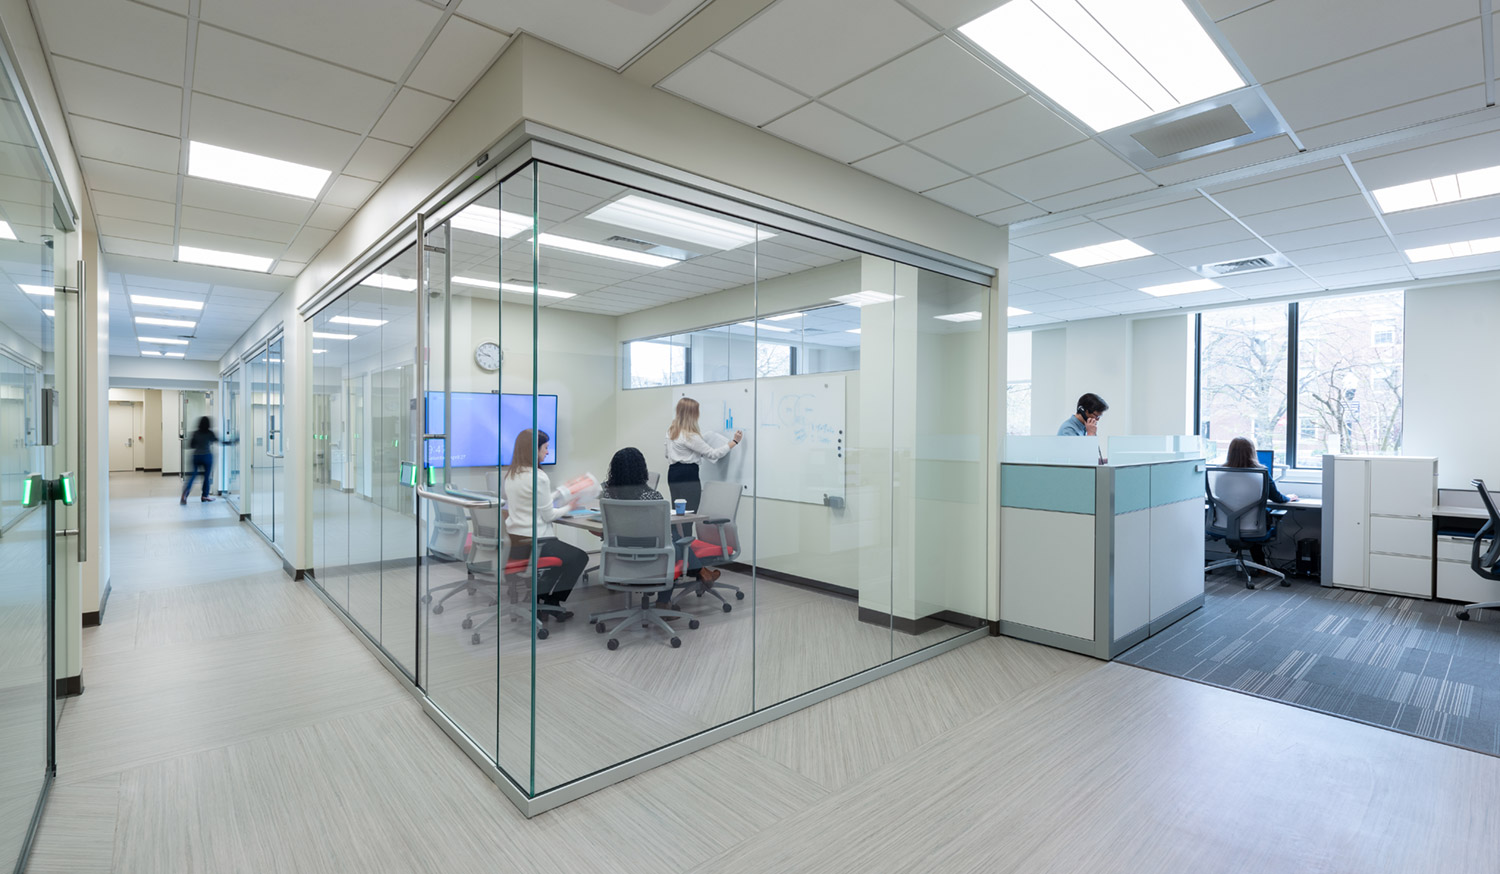 Conference room and open work areas beyond